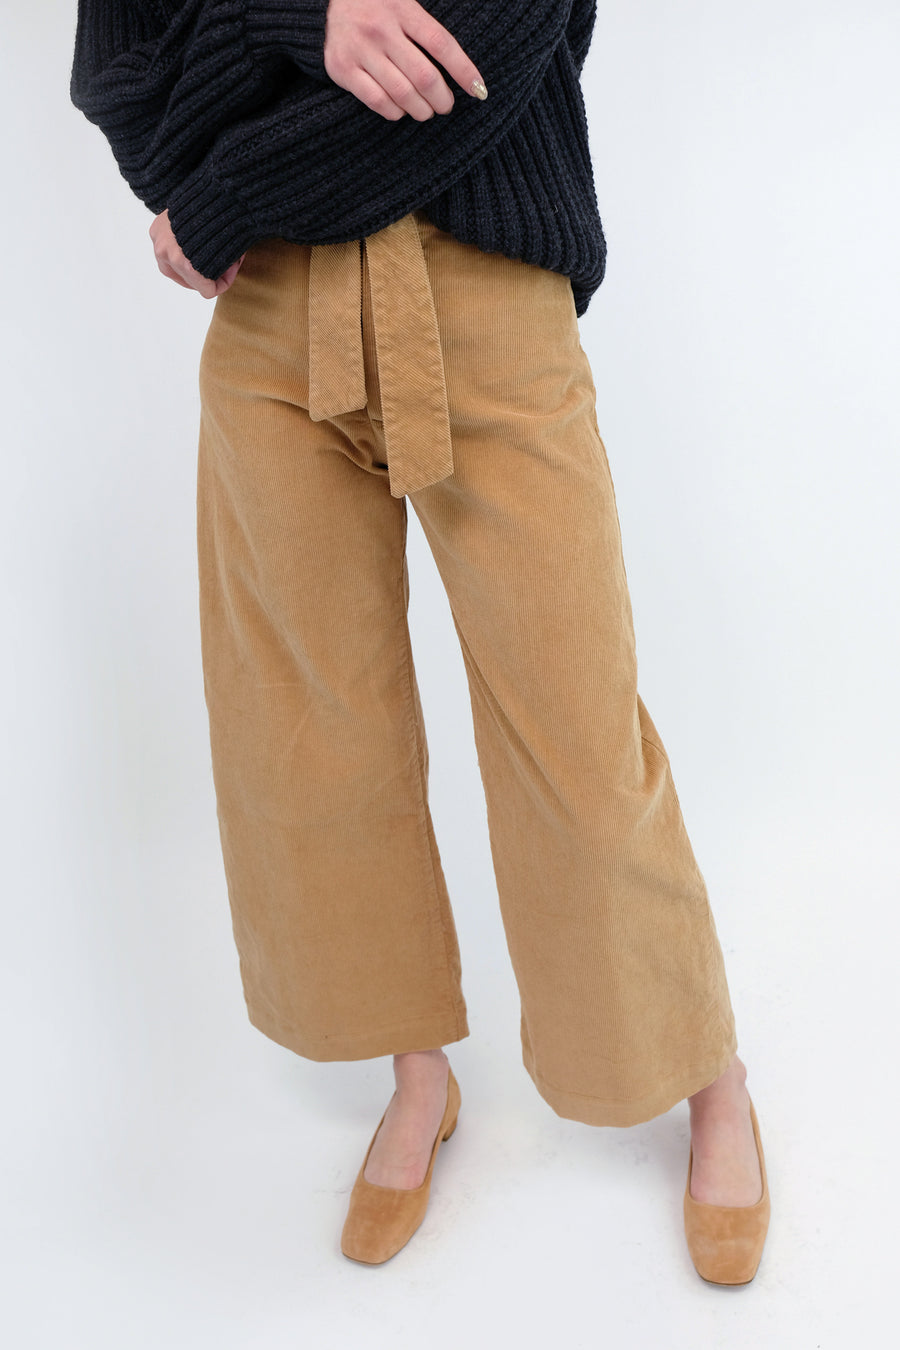 Honey Corduroy Knotted Sailor Pant